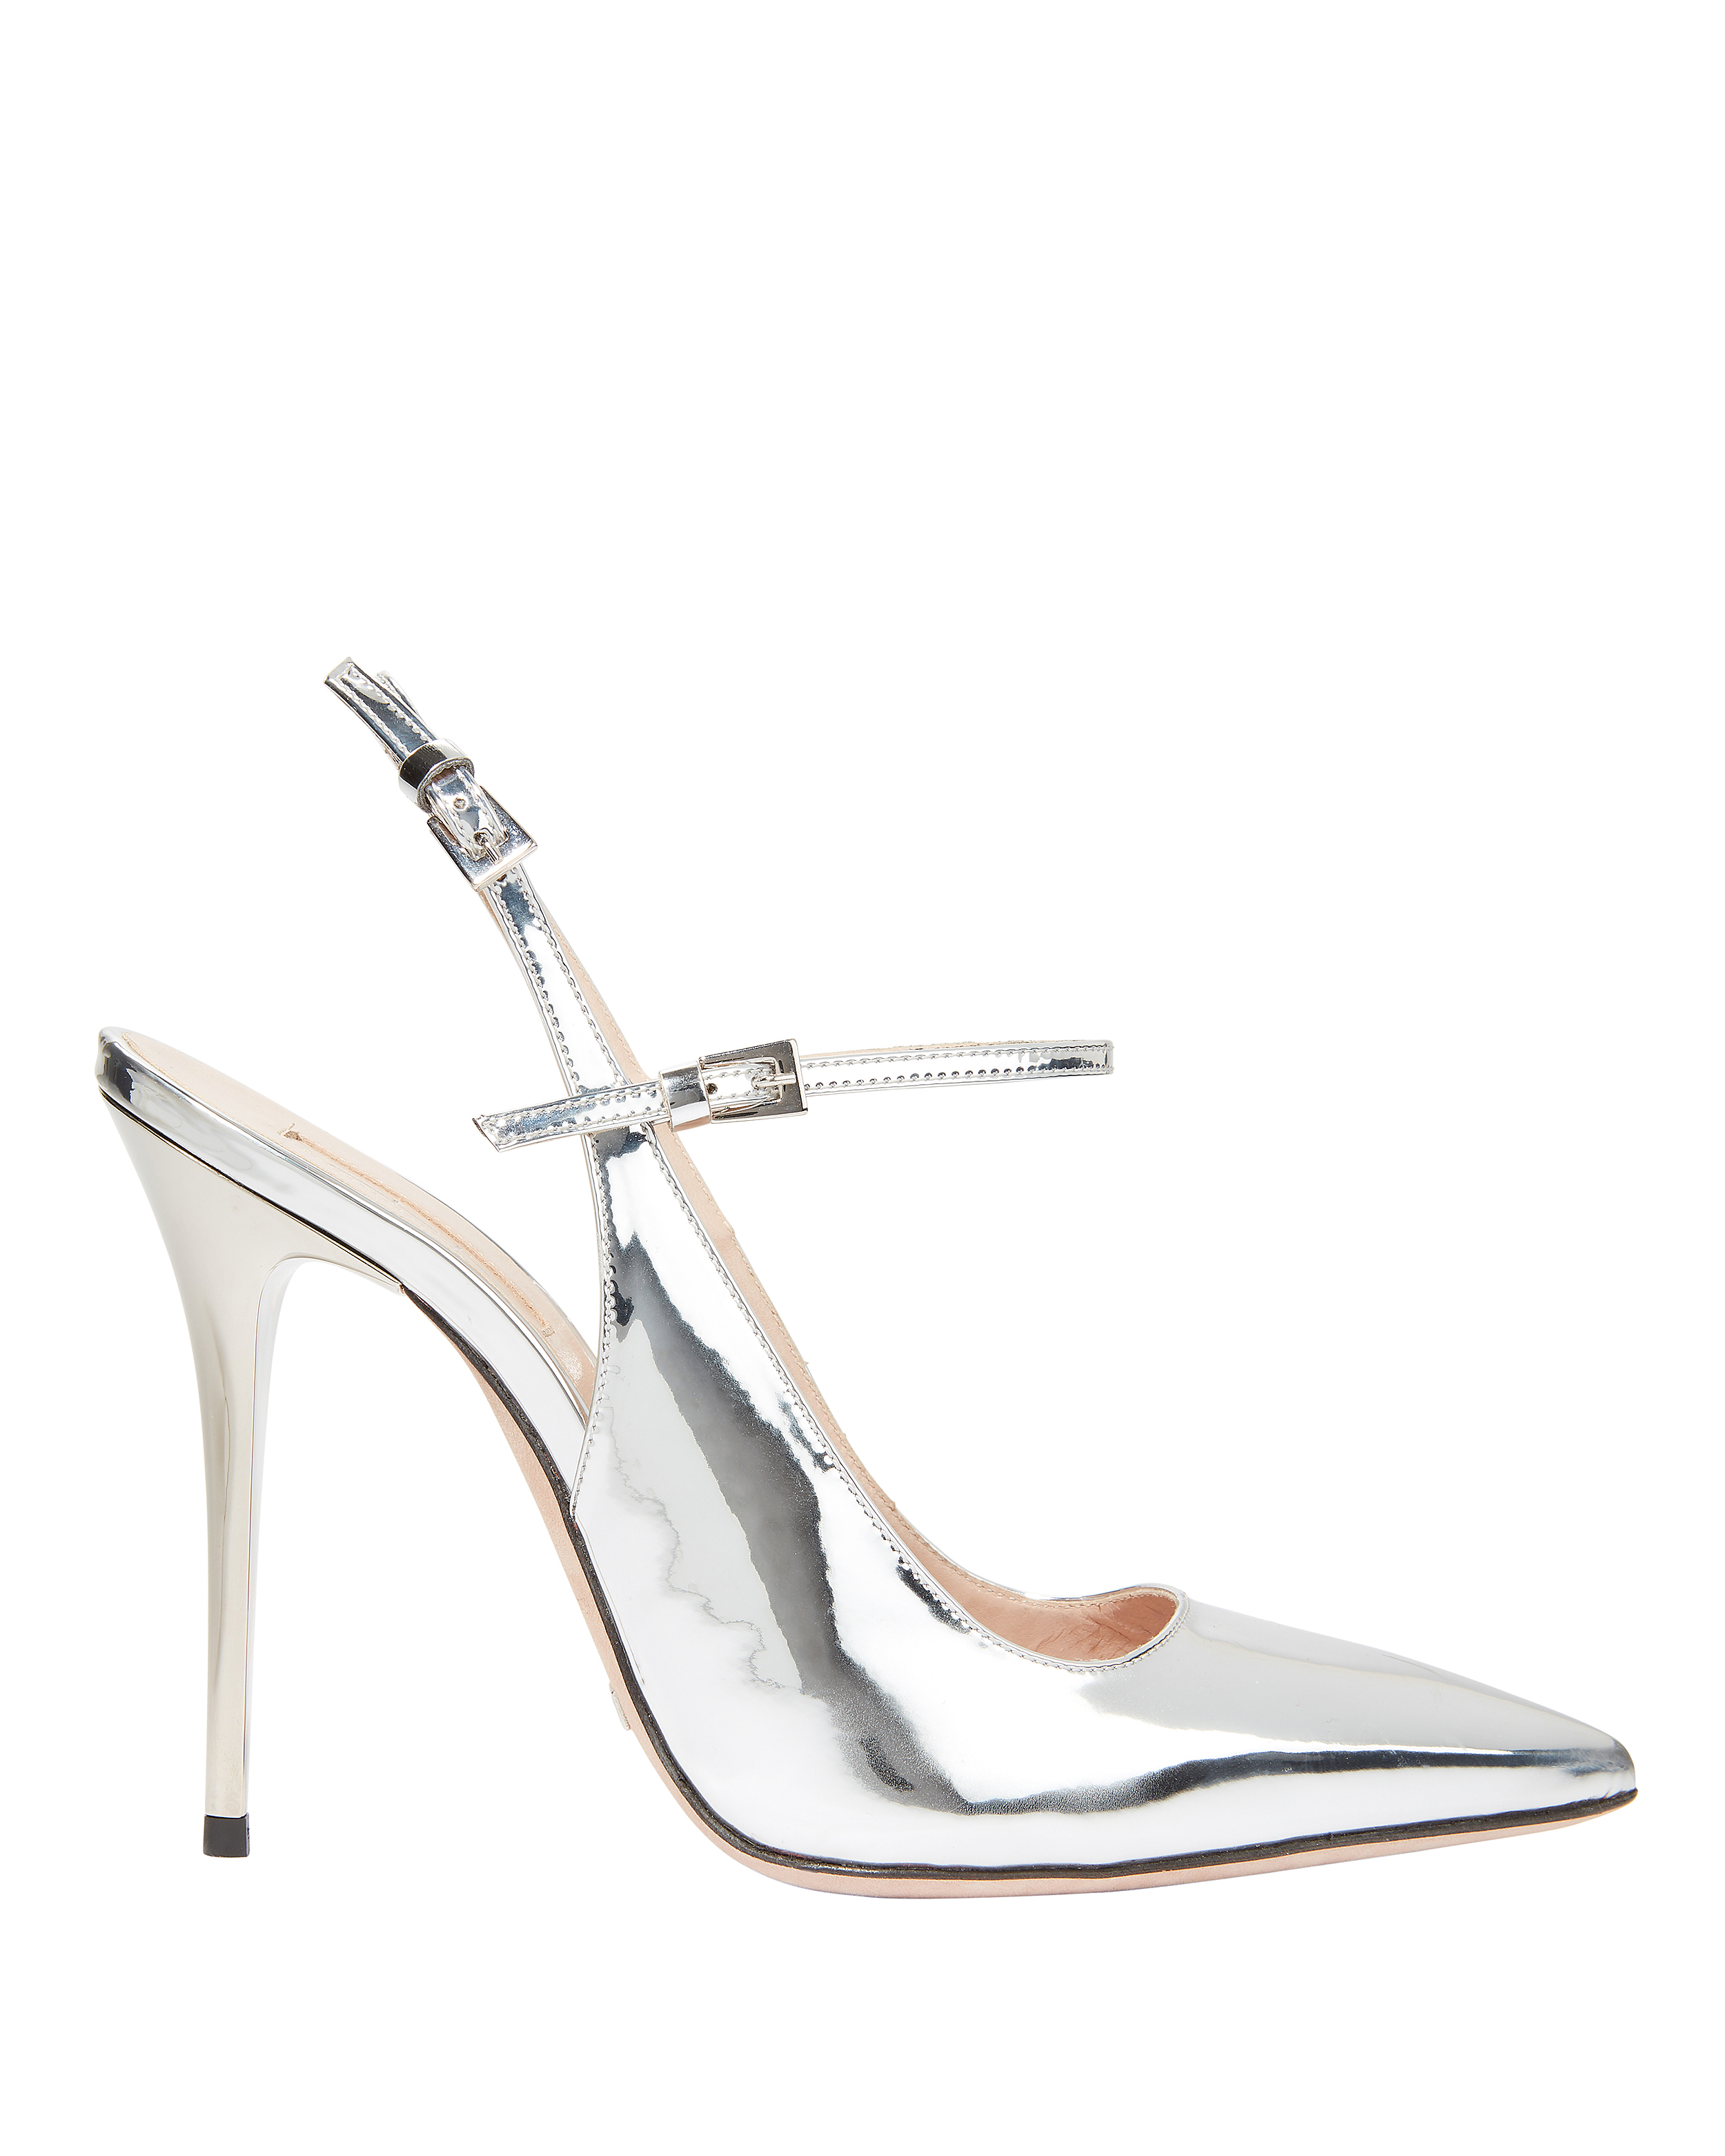 Silver Leather Slingback Sandals